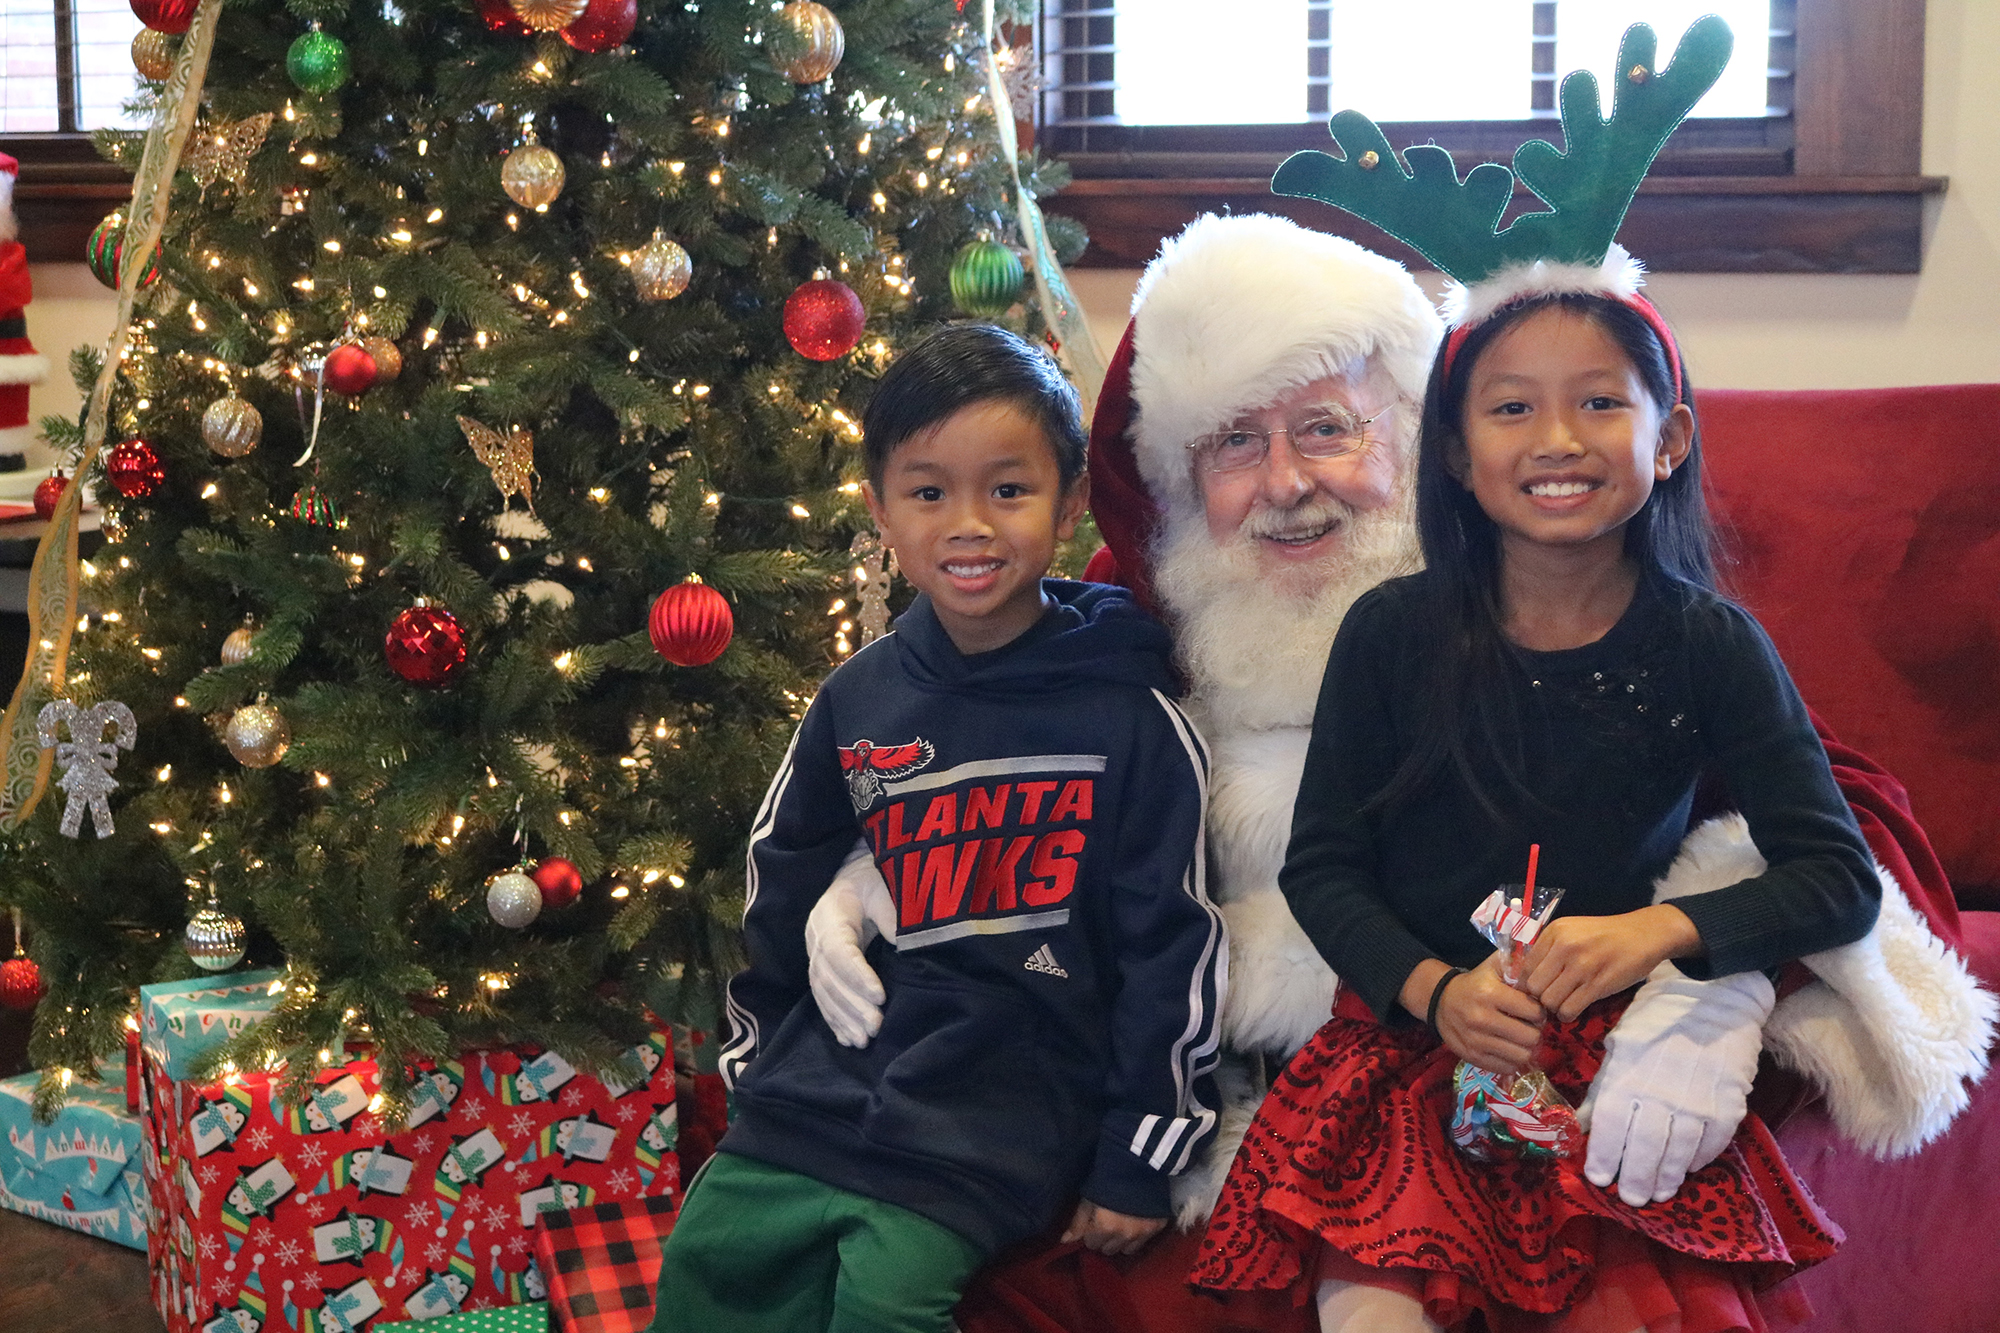 Join us for Breakfast with Santa Dec. 9